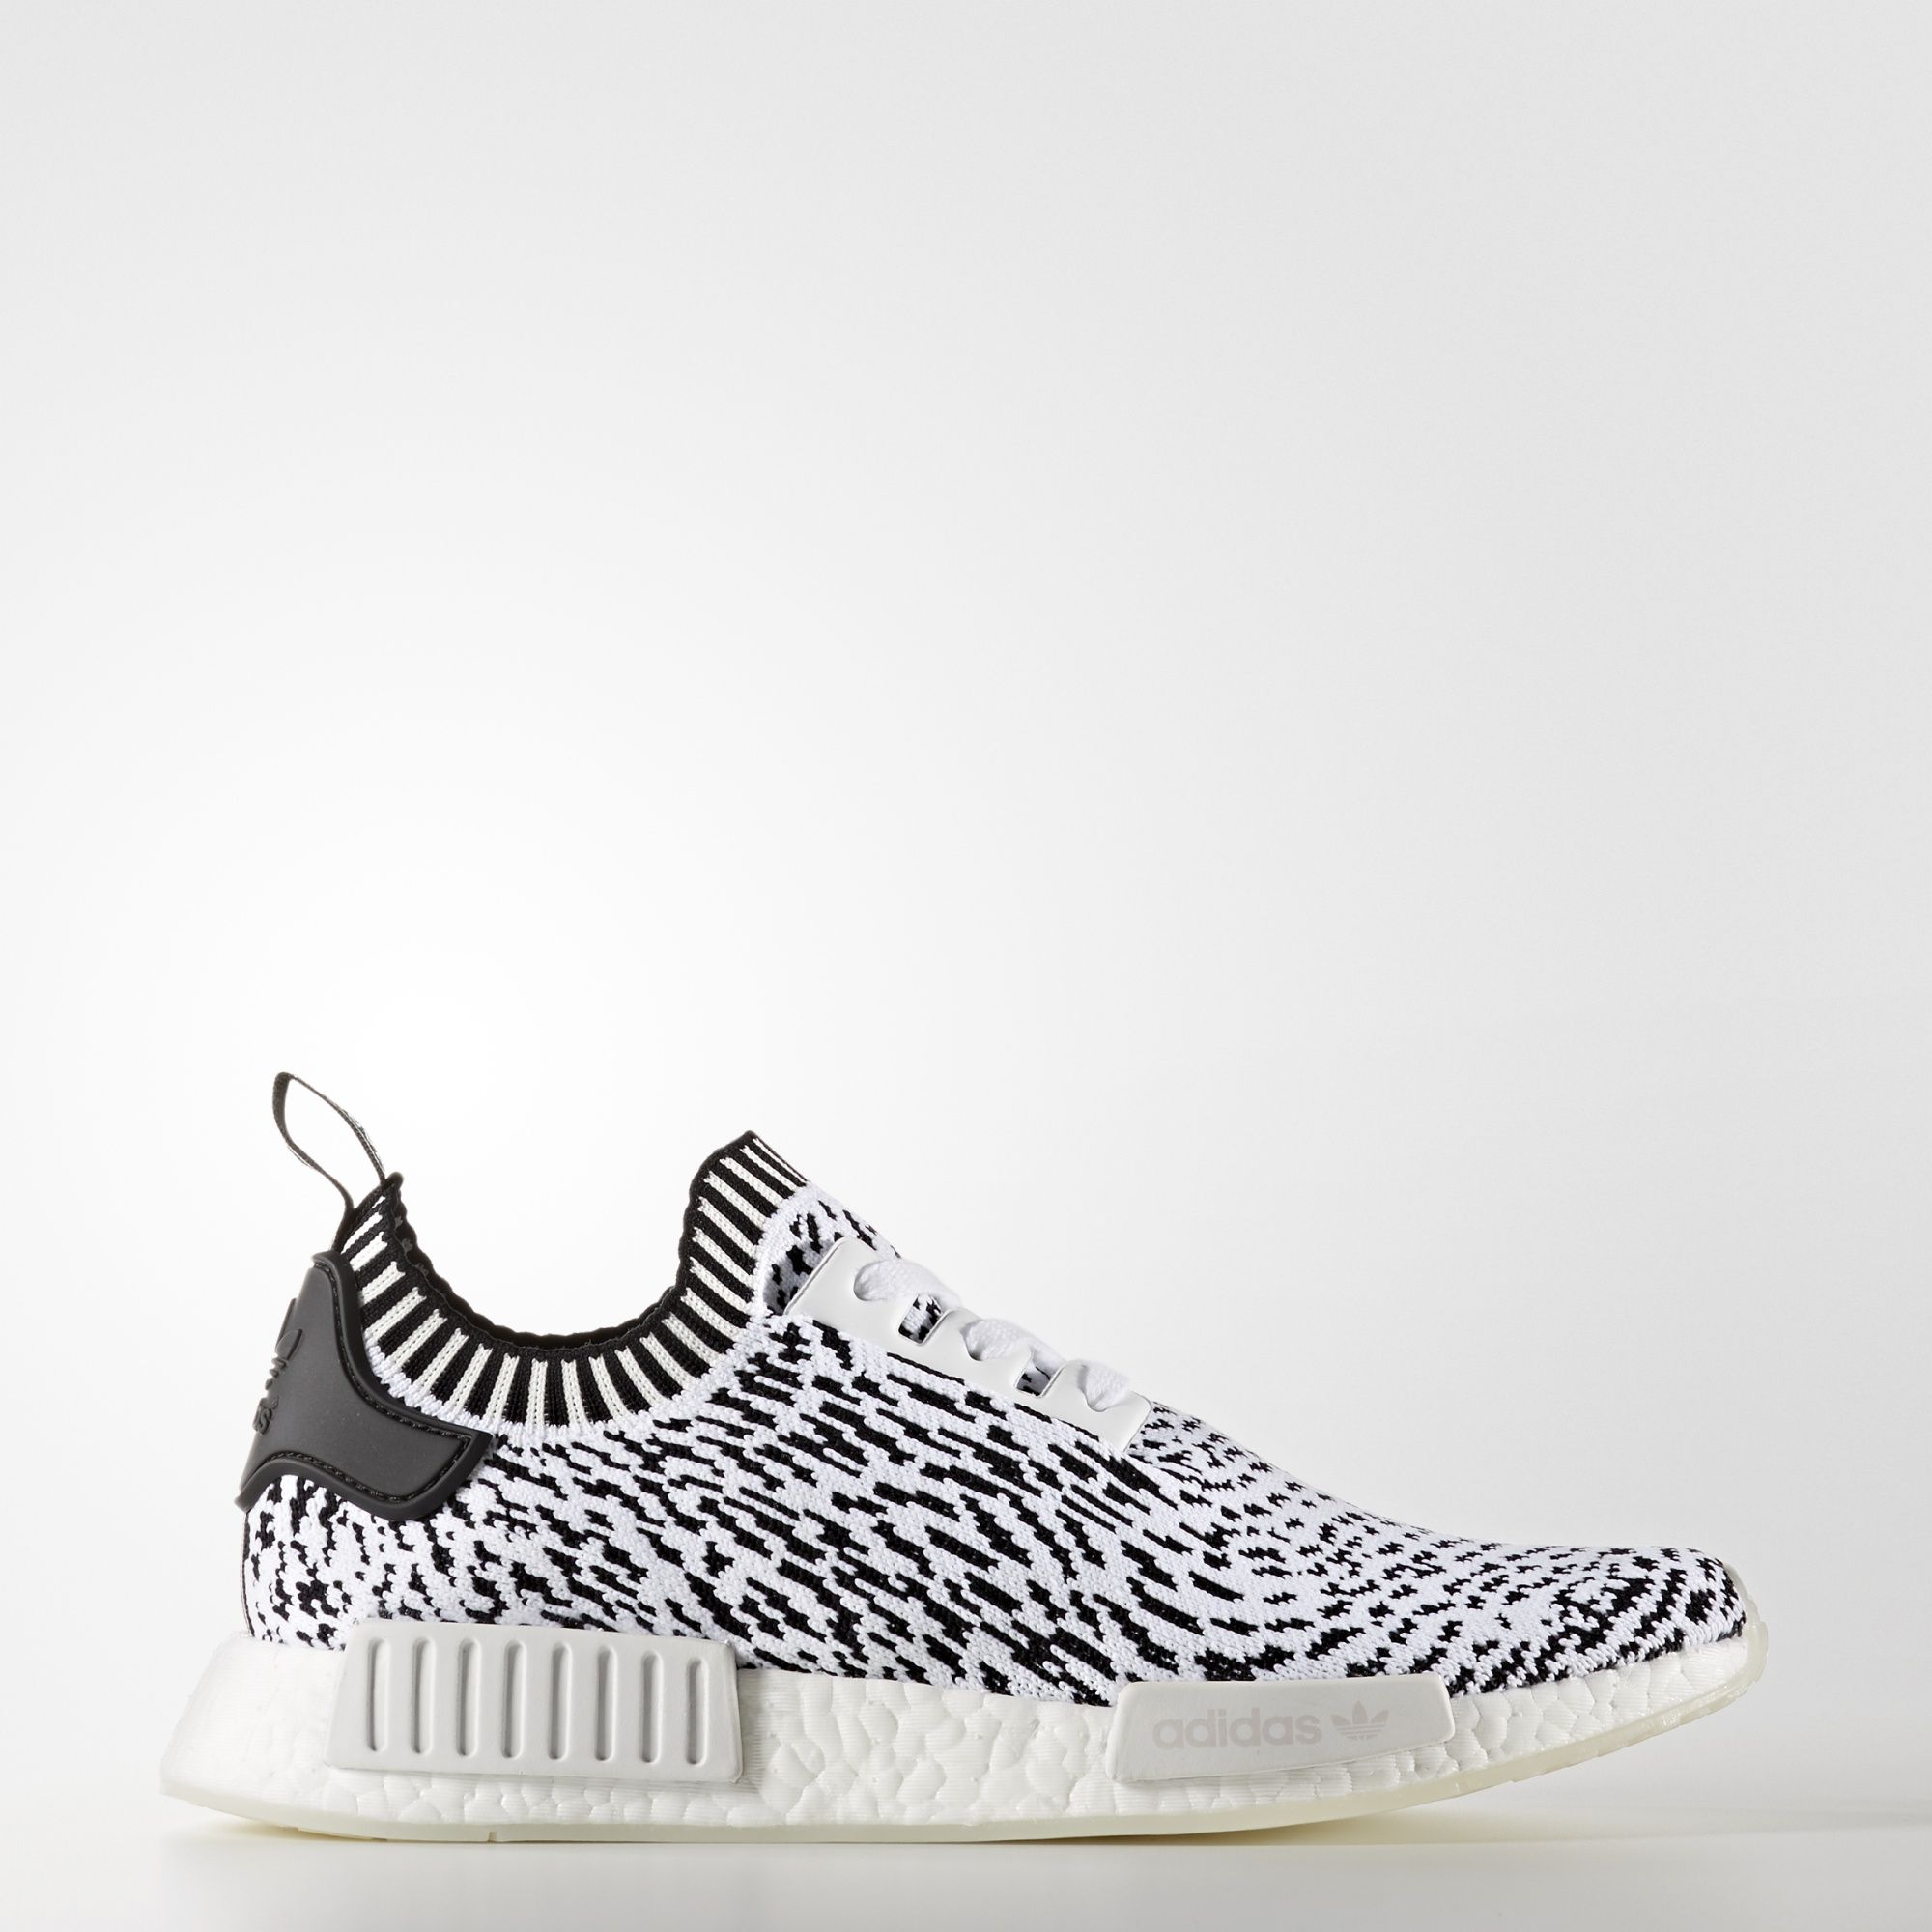 adidas NMD_R1 Primeknit Shoes - Mens Shoes